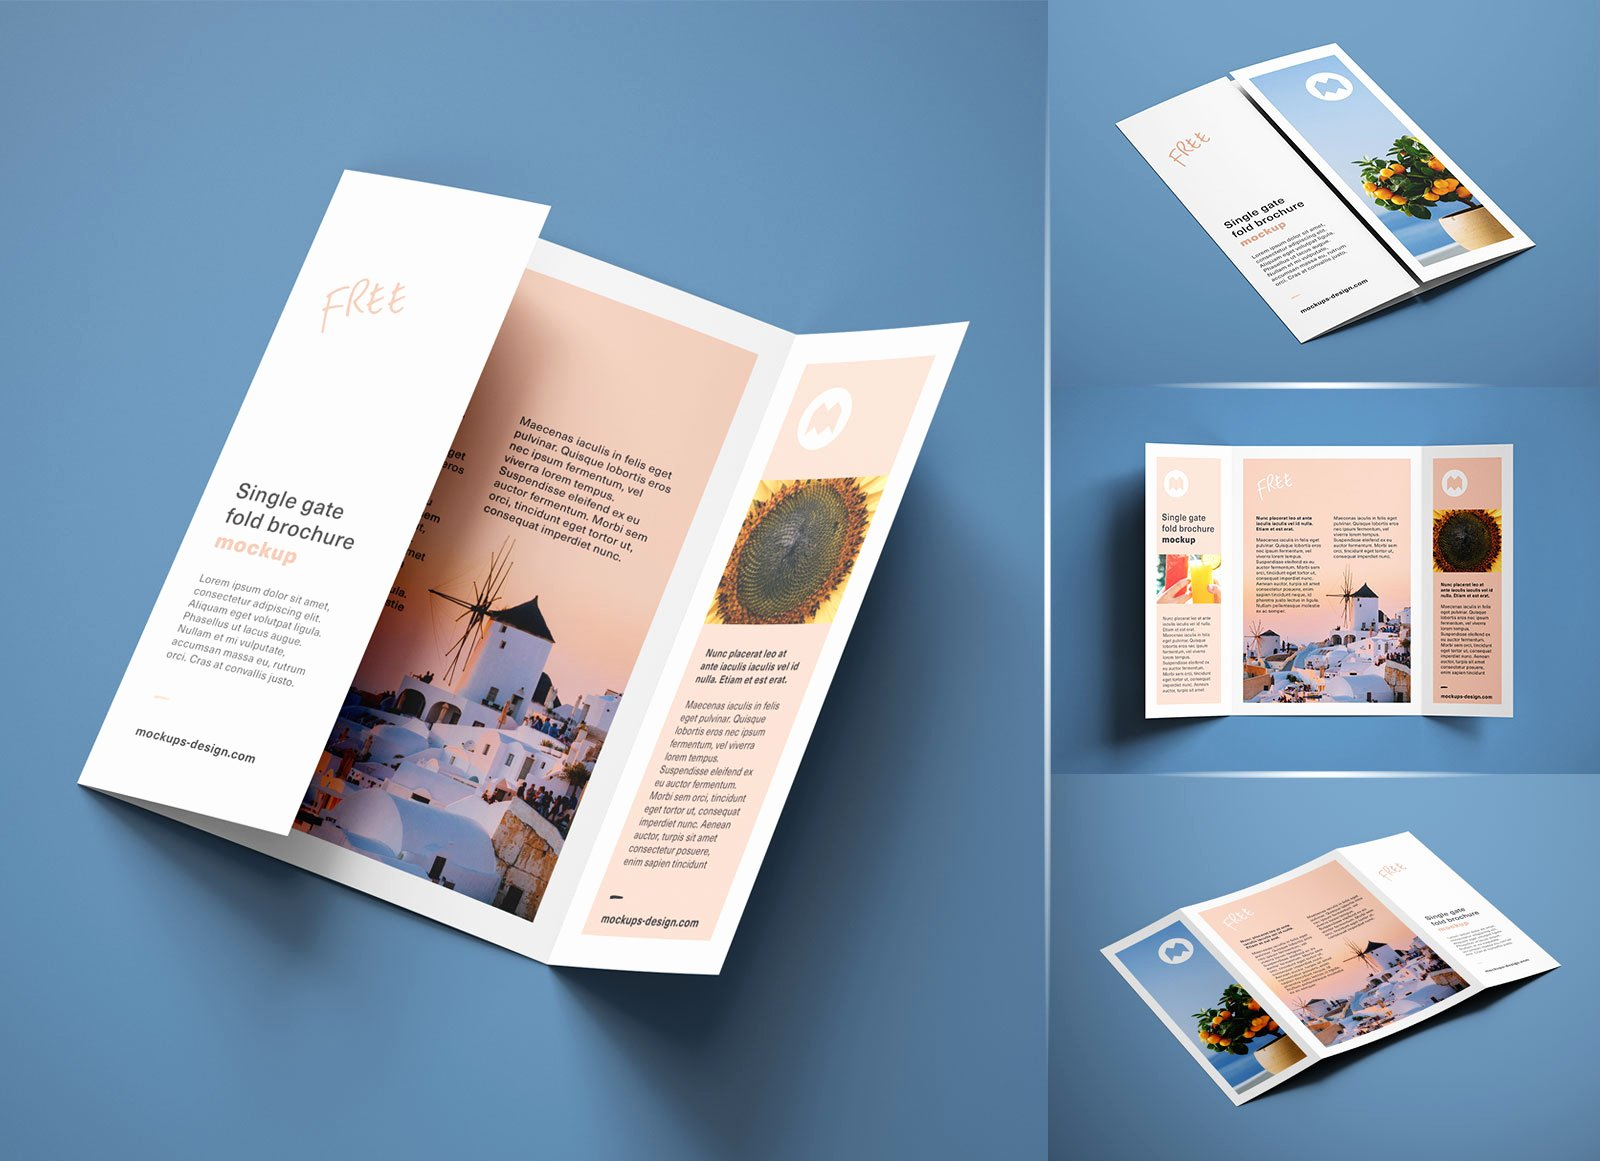 Single Fold Brochure Template Awesome Free A4 Single Gate Fold Brochure Mockup Psd Set Good